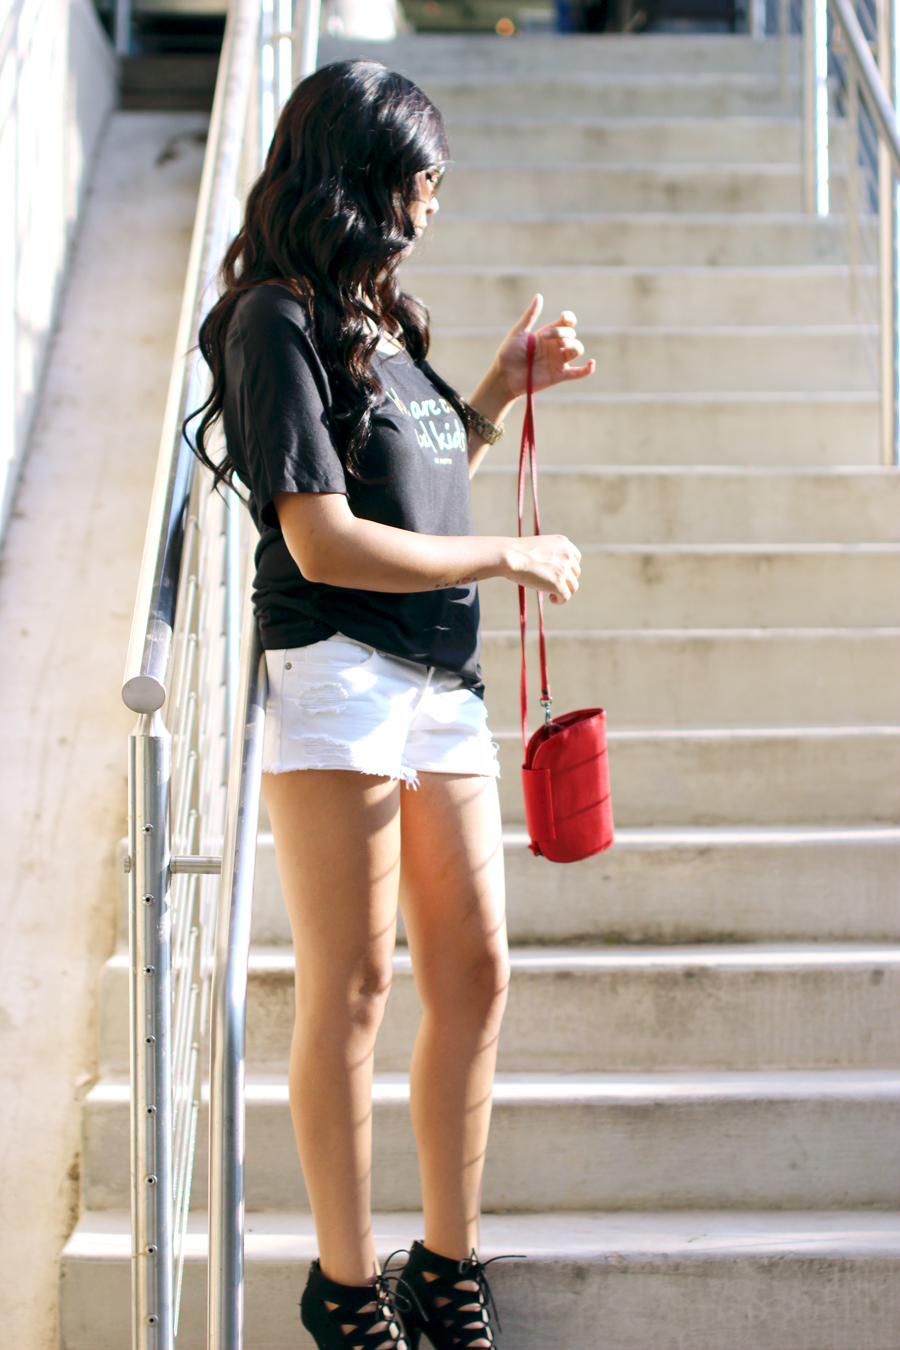 FIXIN-TO-THRILL-LE-MOTTO-ATX-AUSTIN-STYLE-BLOG-SKINNY-SHORTS-SANDALS-SHIRTS-WORDS-EMPOWERMENT-SPONSORED-TRENDS-FW15-TRENDY-CHIC-GLAM-FASHION-TEXAS-BLACK-8